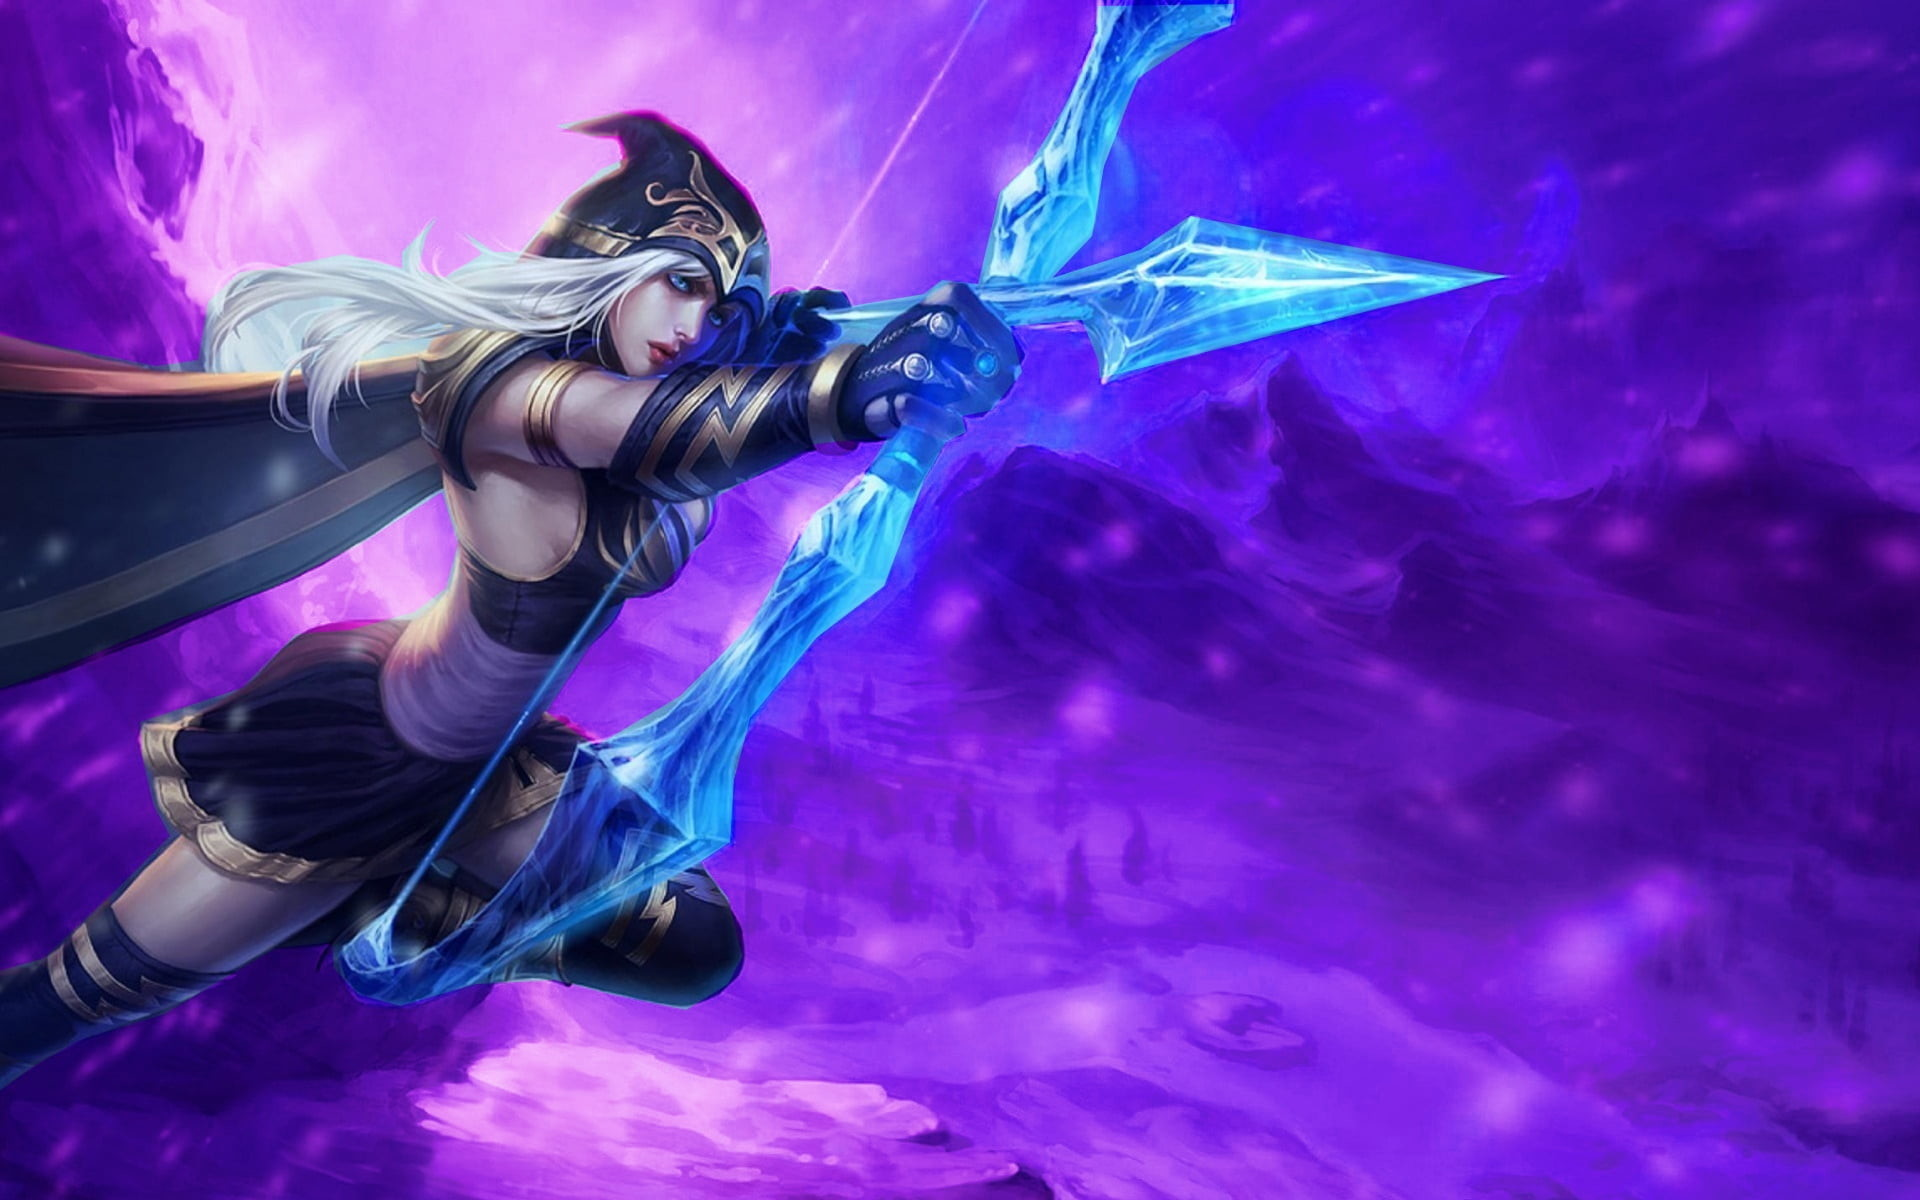 Res: 1920x1200, Ashe from League of Legends illustration HD wallpaper